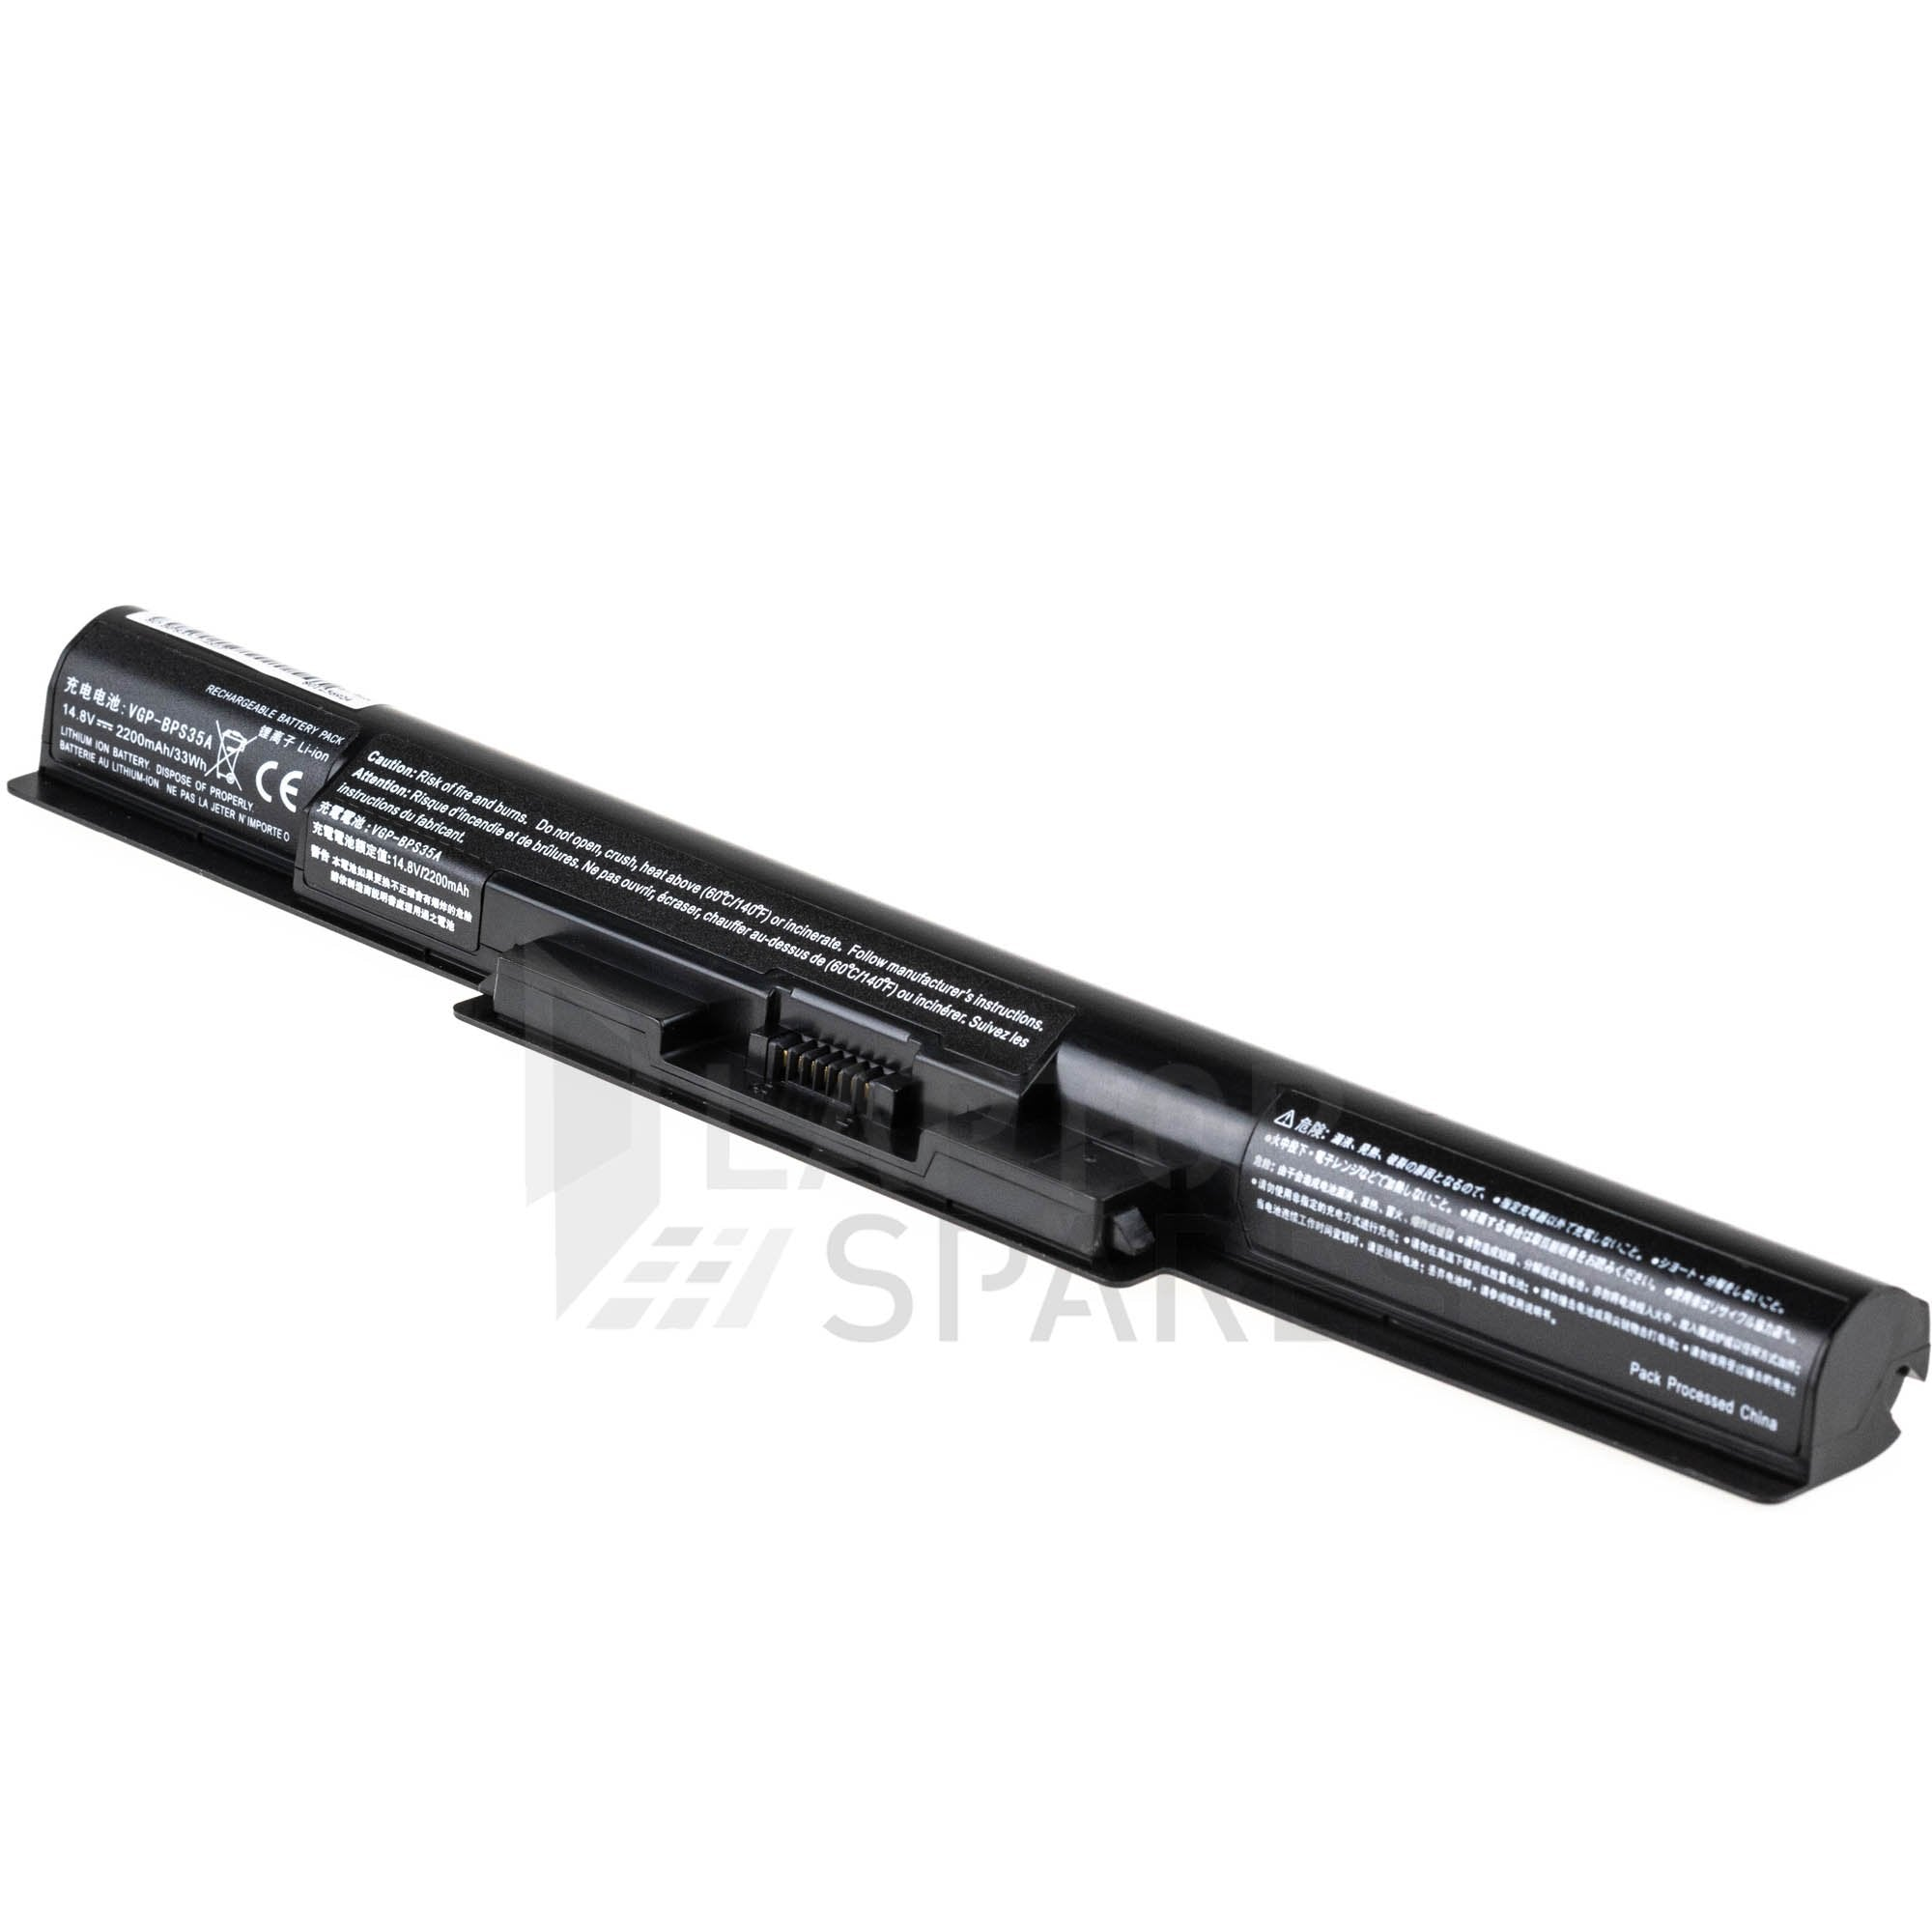 Sony Vaio F1521V6CW F1521V9CB 2200mAh 4 Cell Battery